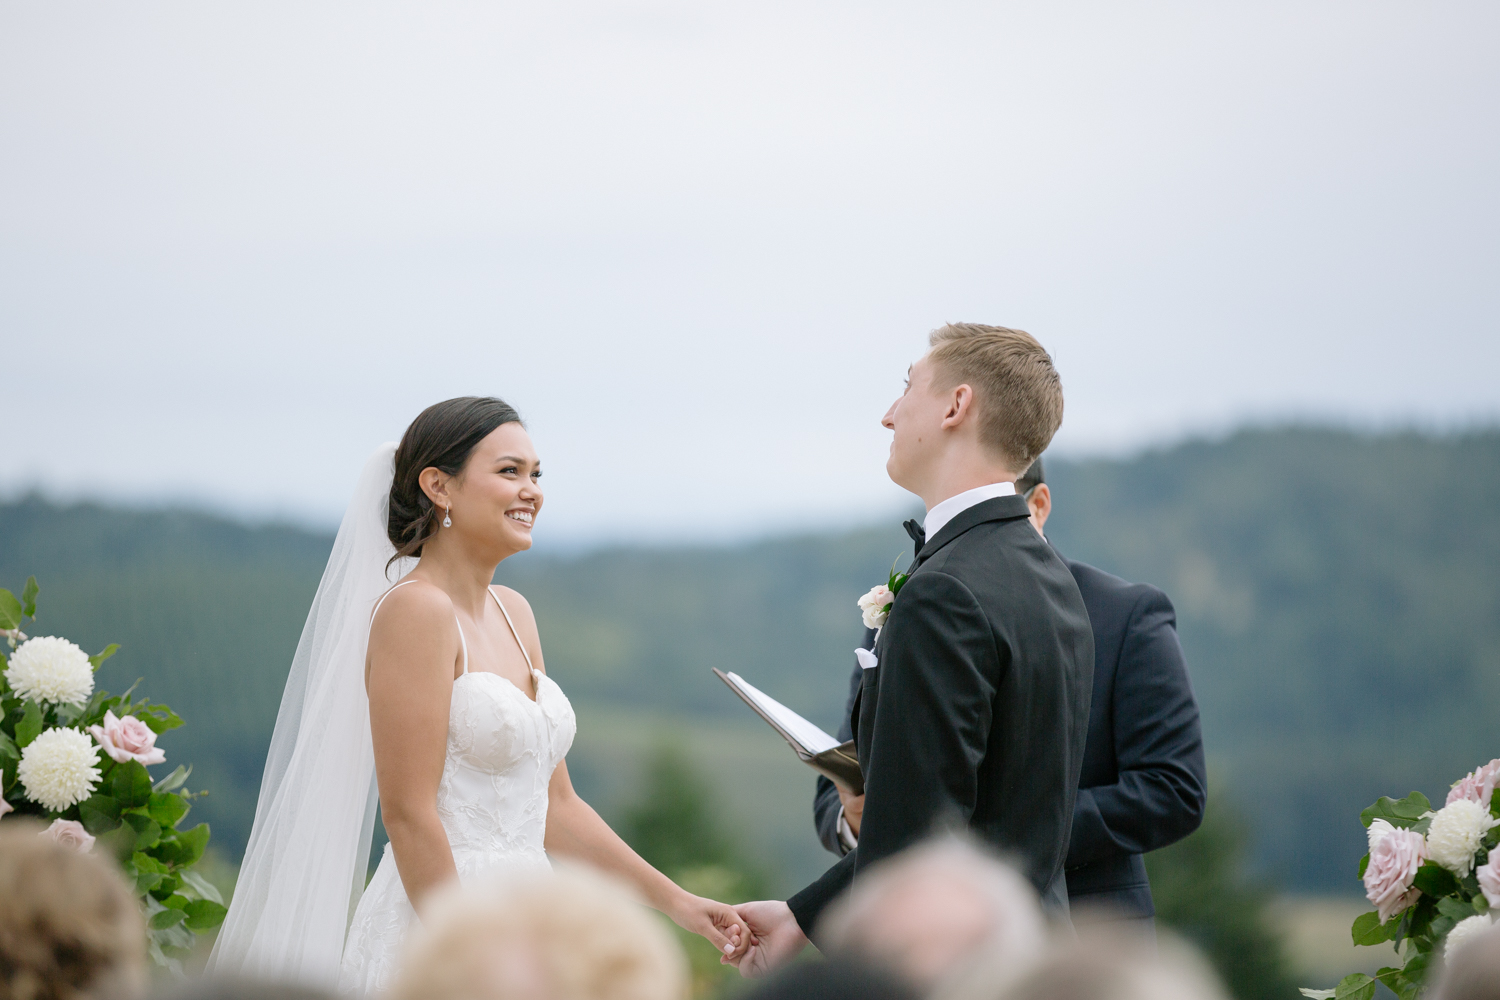 Youngberg Hill Vineyard Wedding in Wine Country Oregon - Corrie Mick Photography-280.jpg